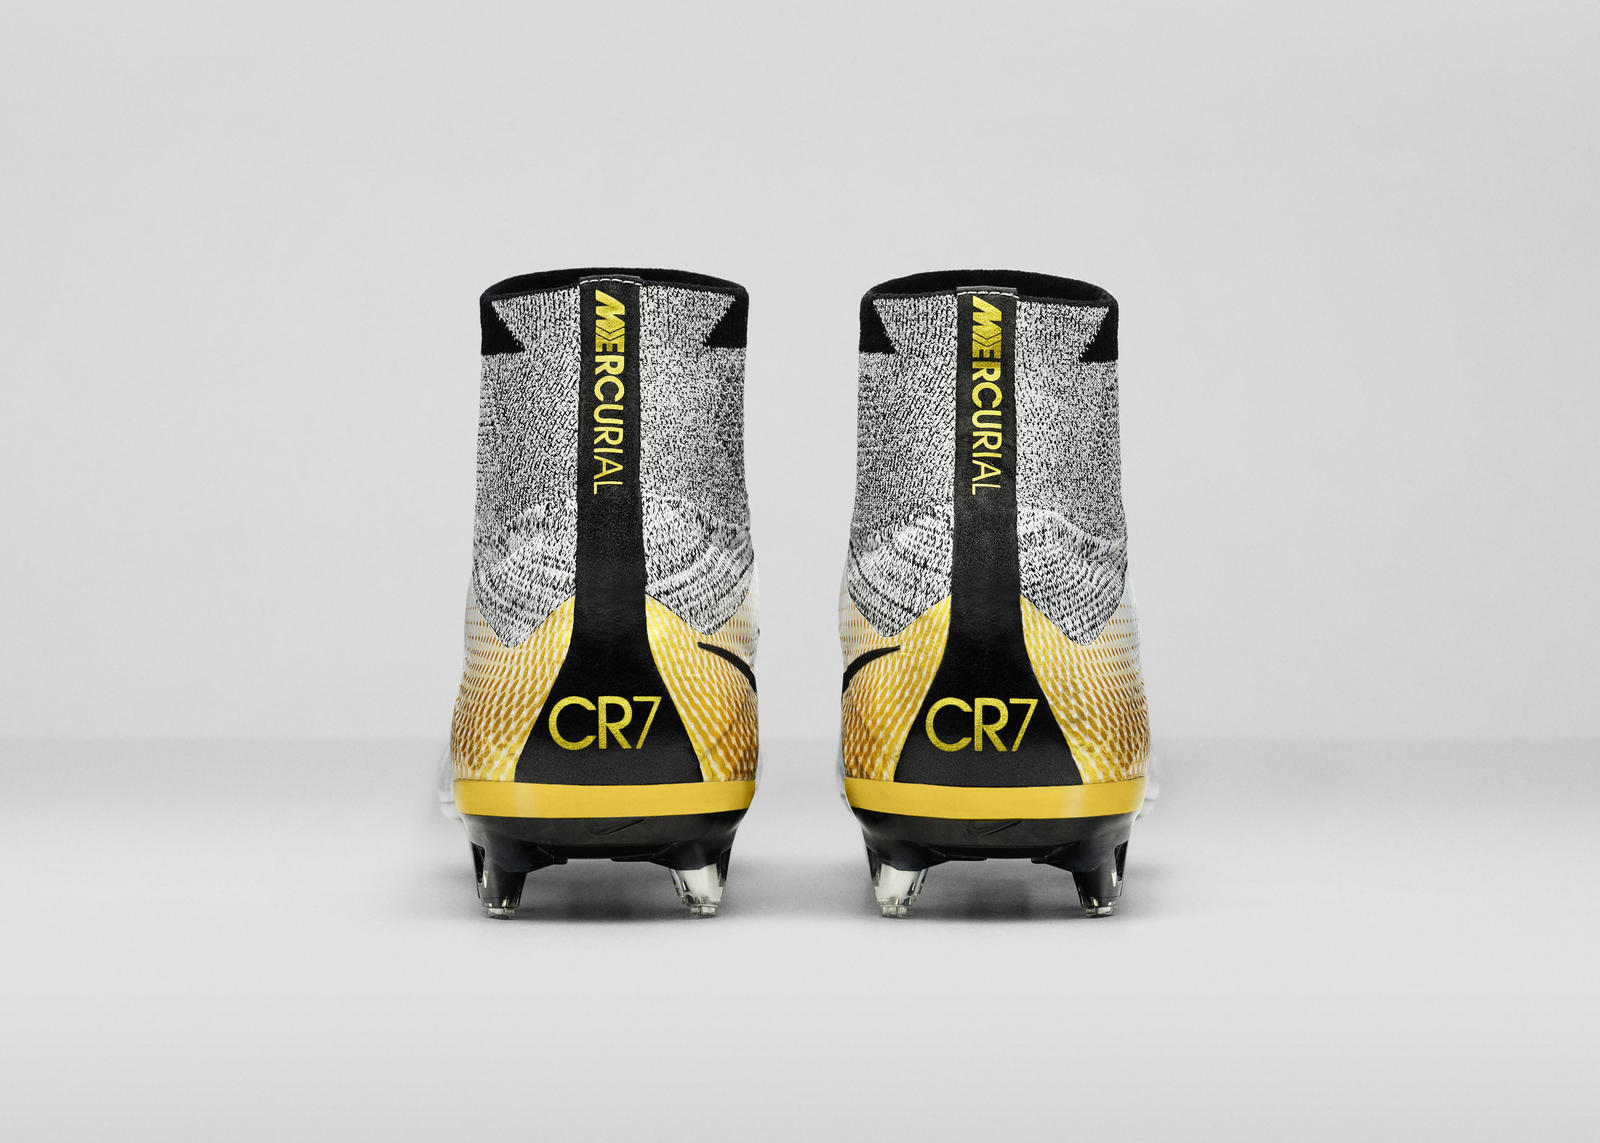 Nike Superfly Cr7 Gold Heel View 07 V2